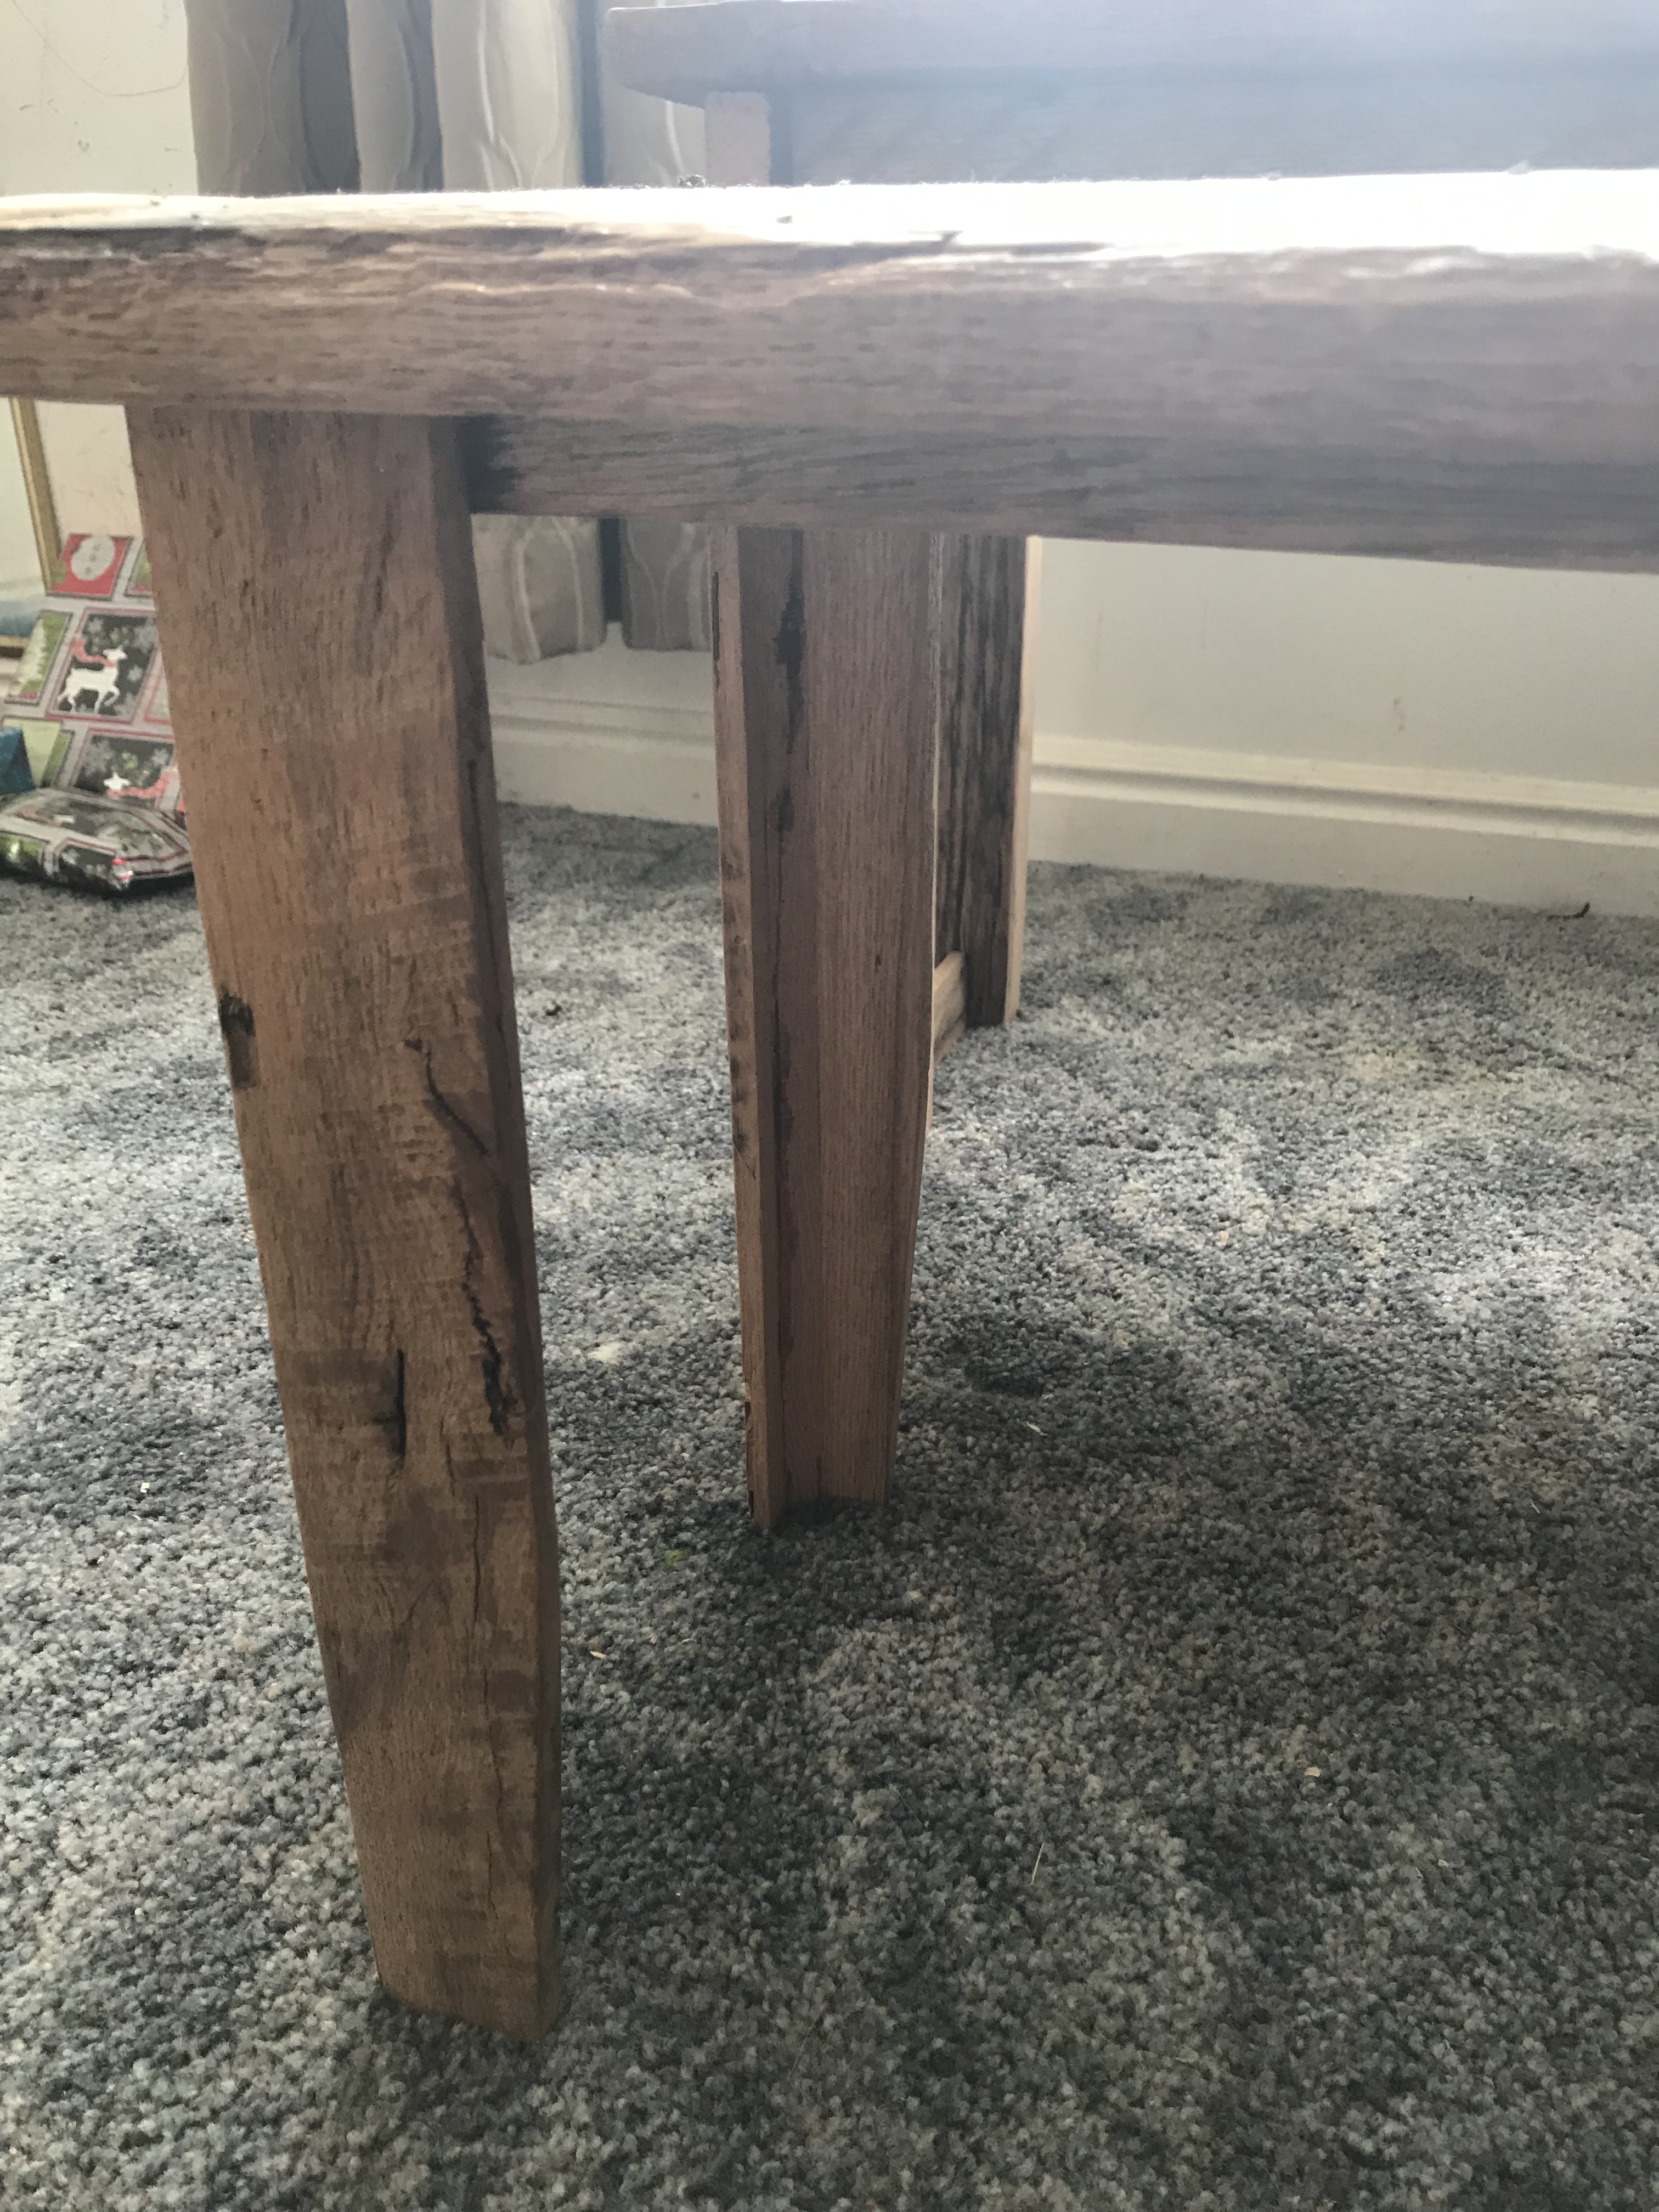 Slay styled Oak barn wood bench legs with a taper at the bottom